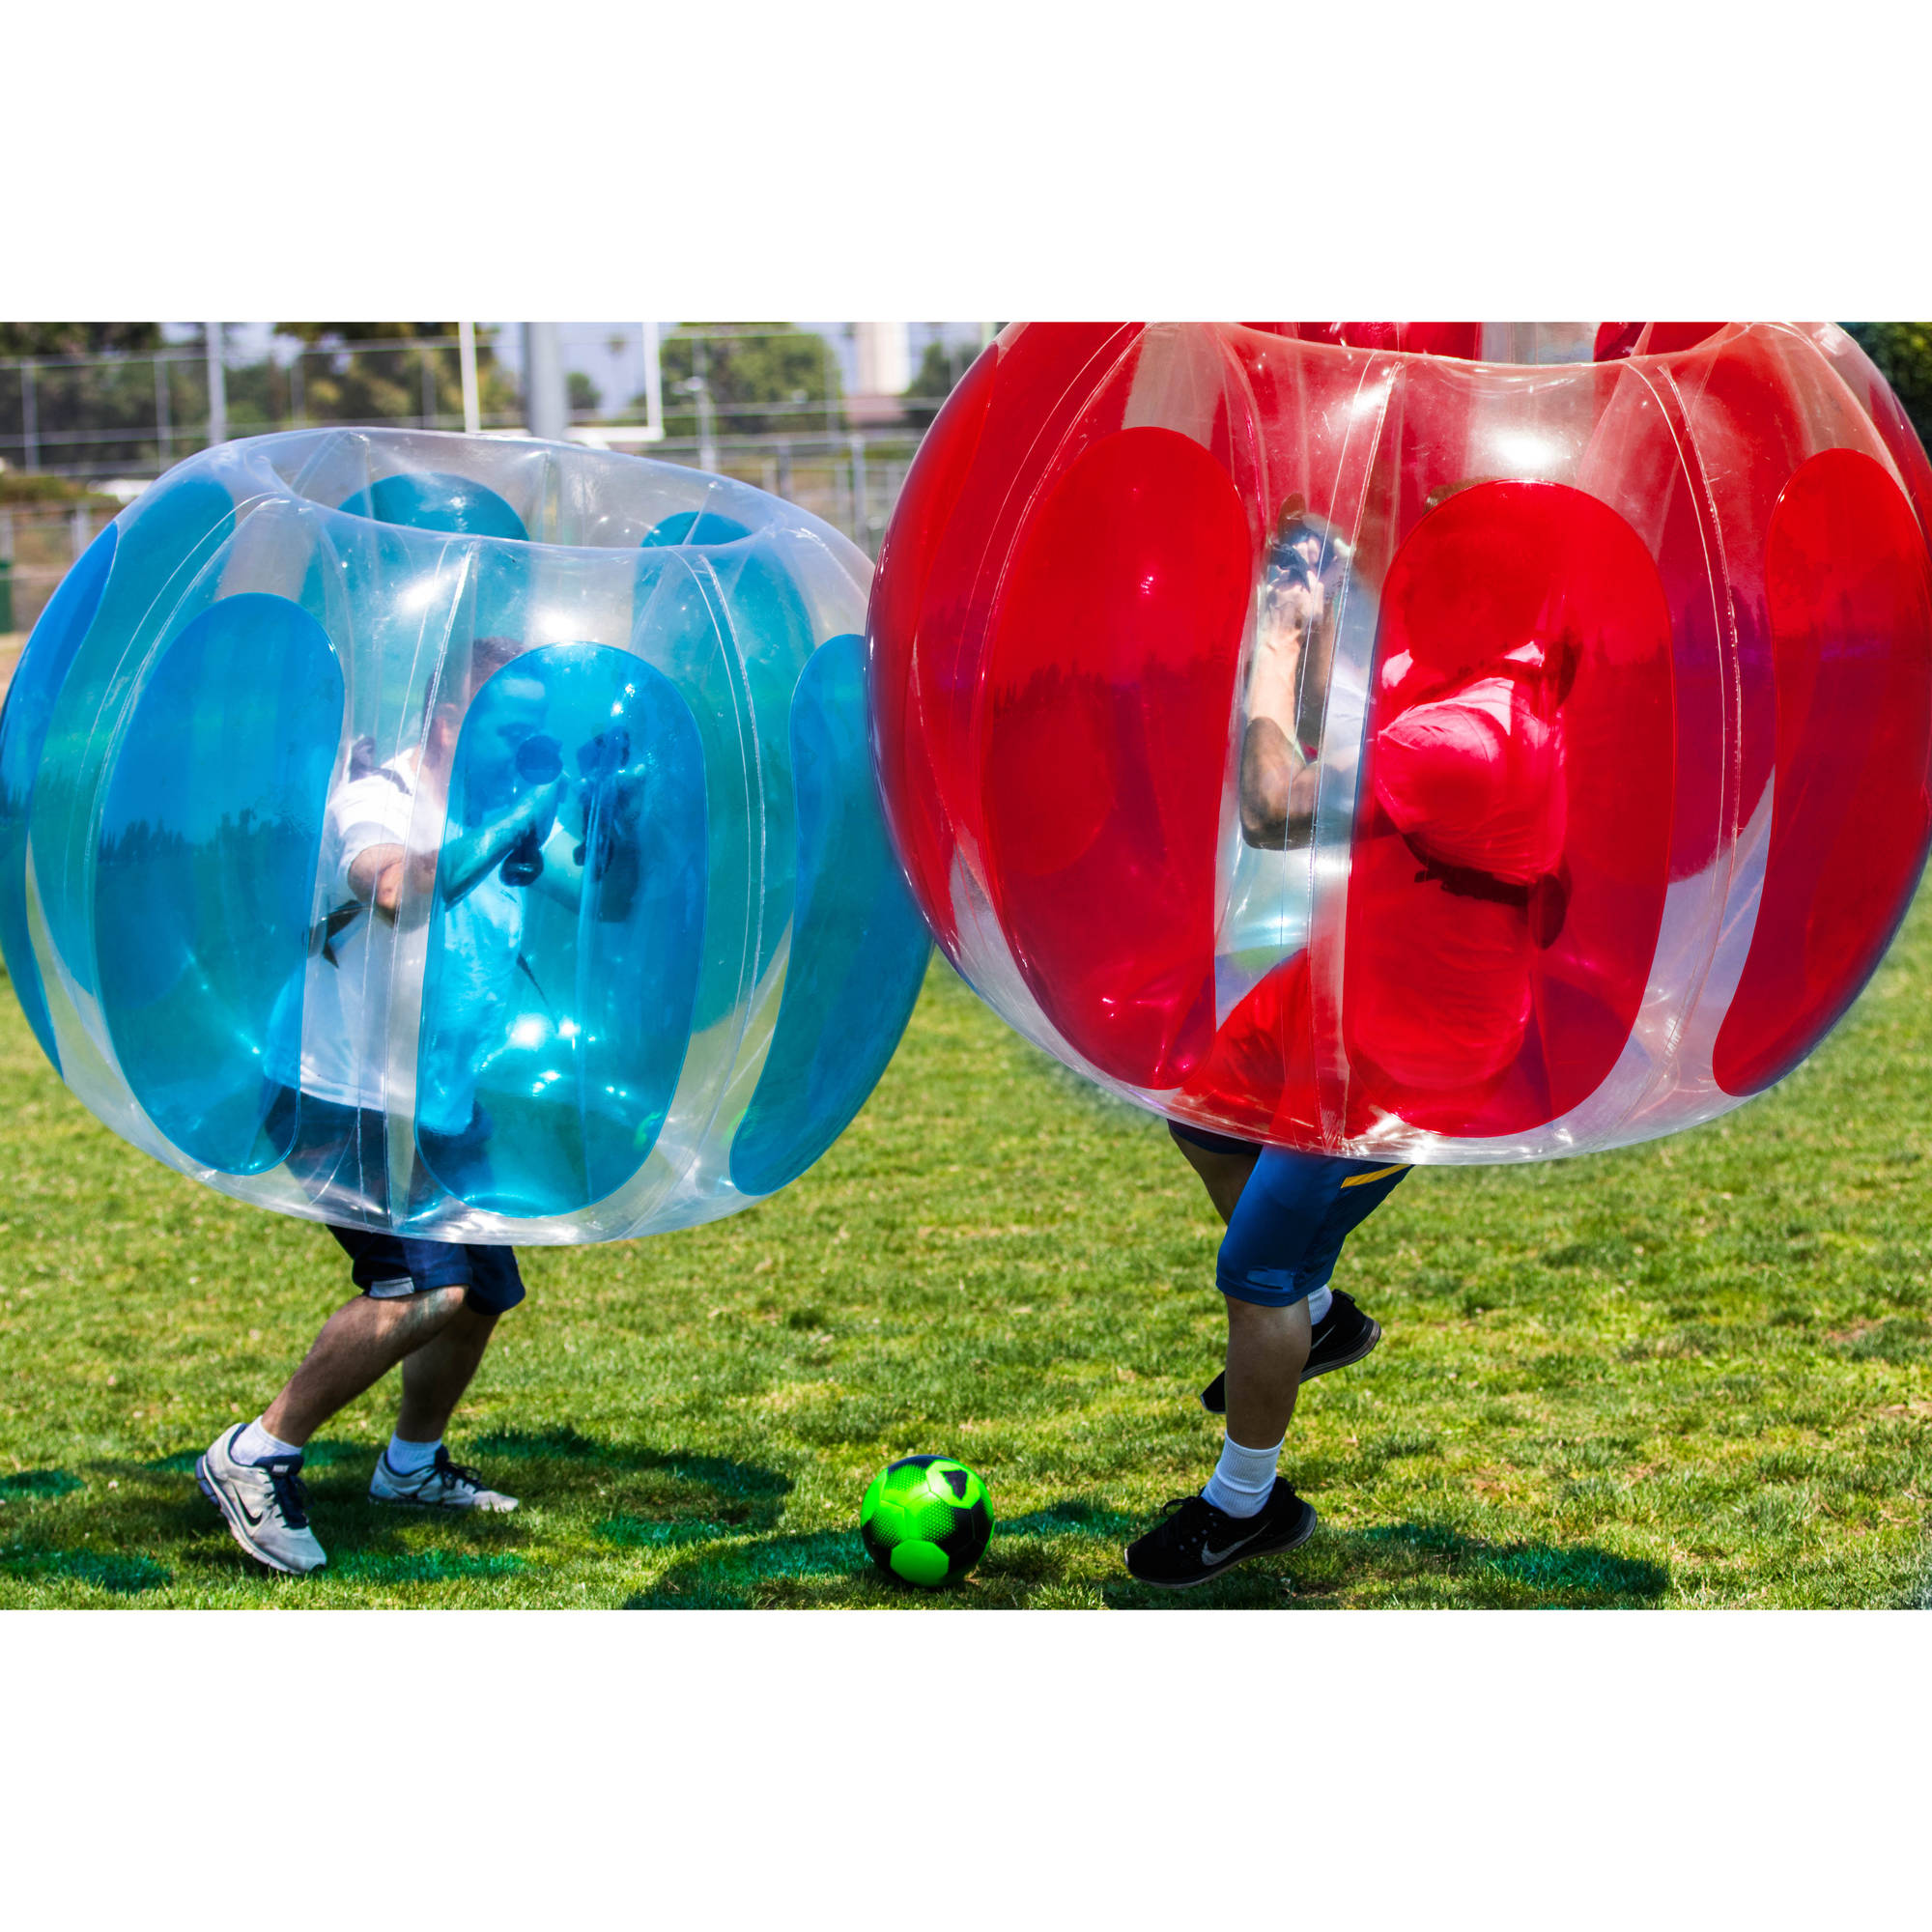 Sportspower 2pk Adult's Inflatable Bubble Soccer by Natus Inc